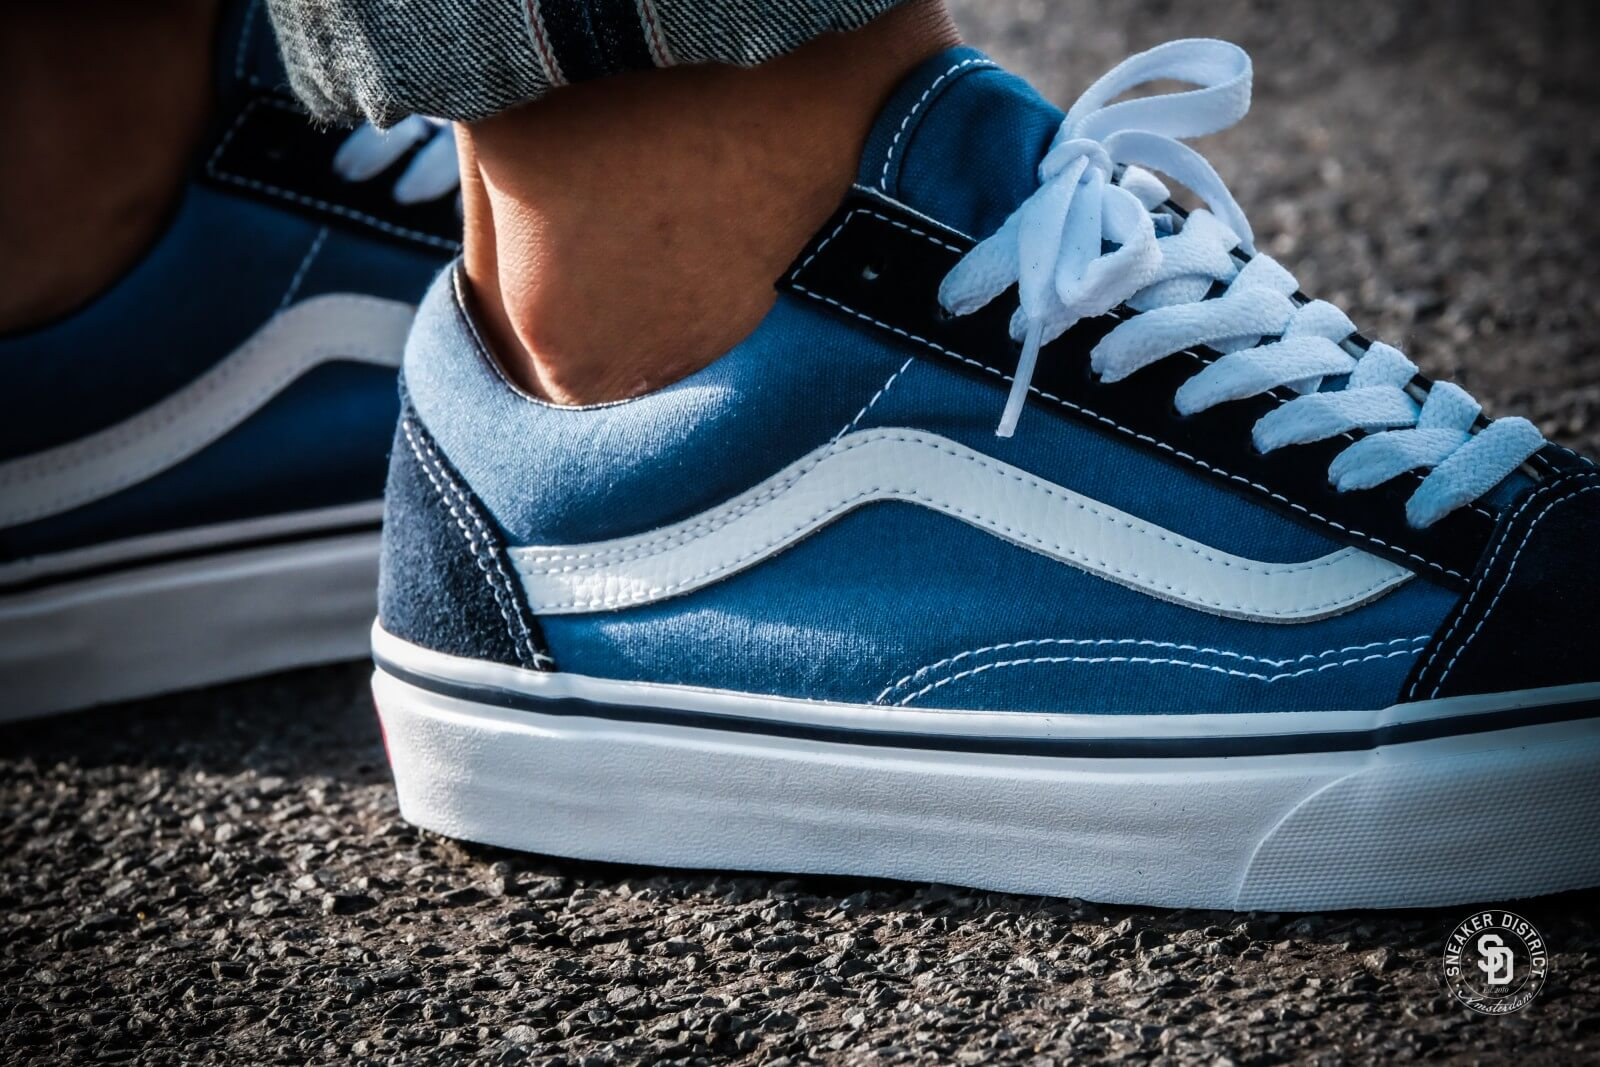 c5244dfaf808 Buy vans old skool navy blue